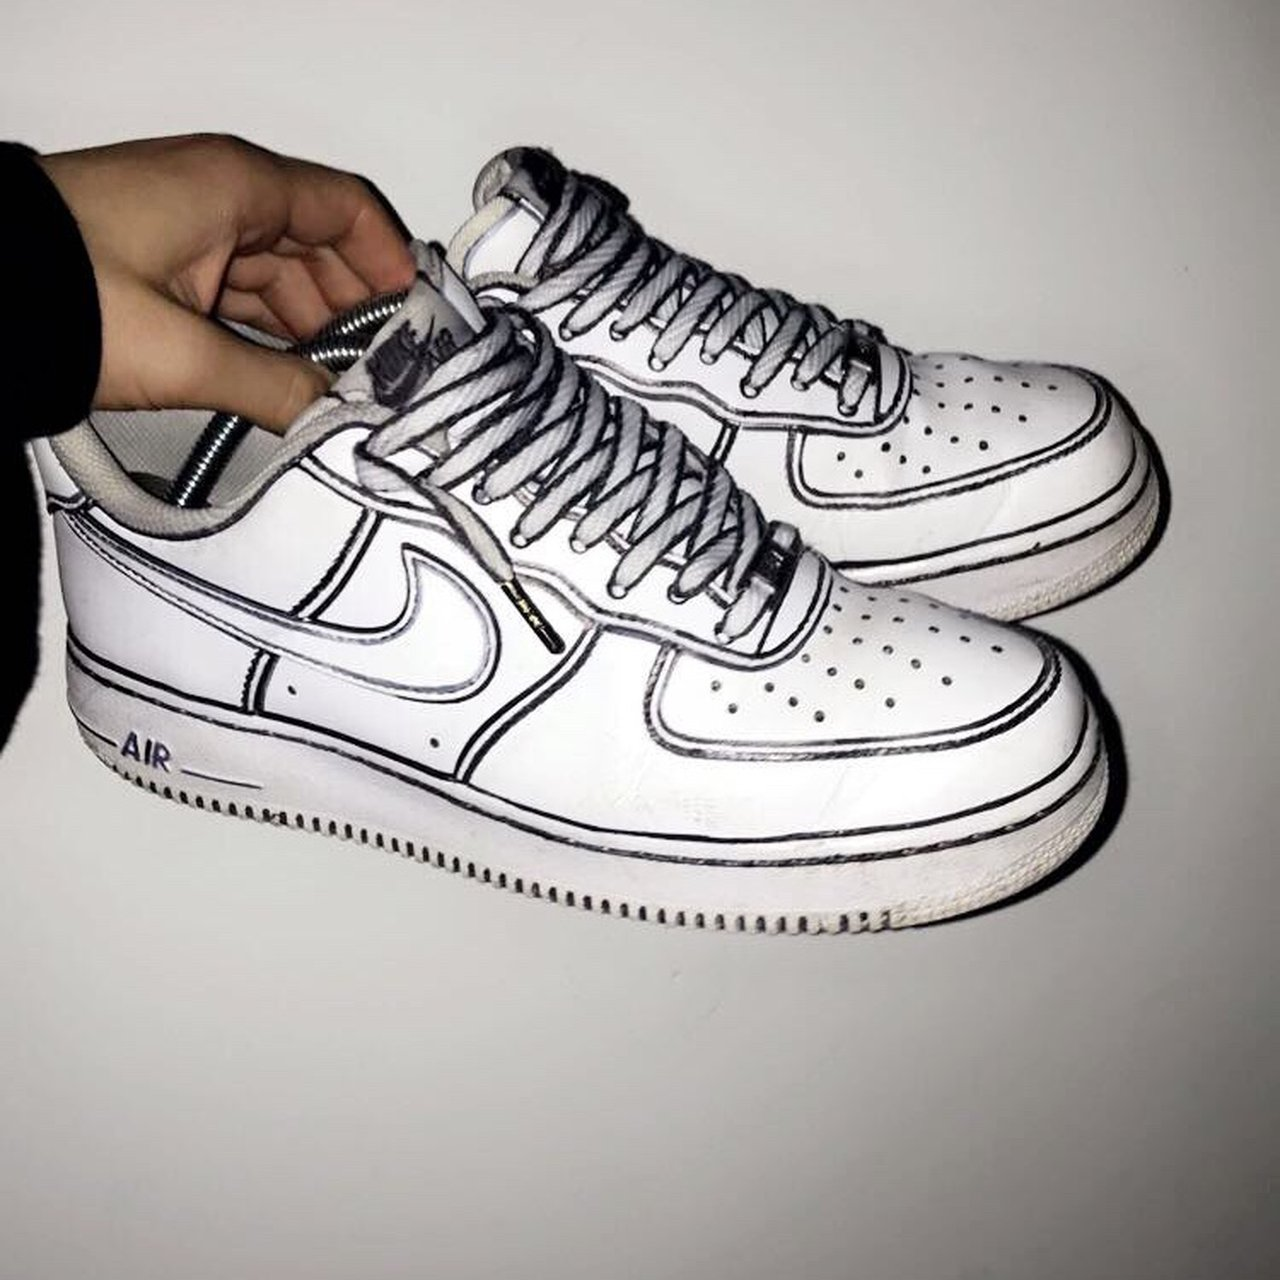 0bac12364219b3 Cartoon custom Air Force 1 Size 7.5 8 10 condition Pm me - Depop